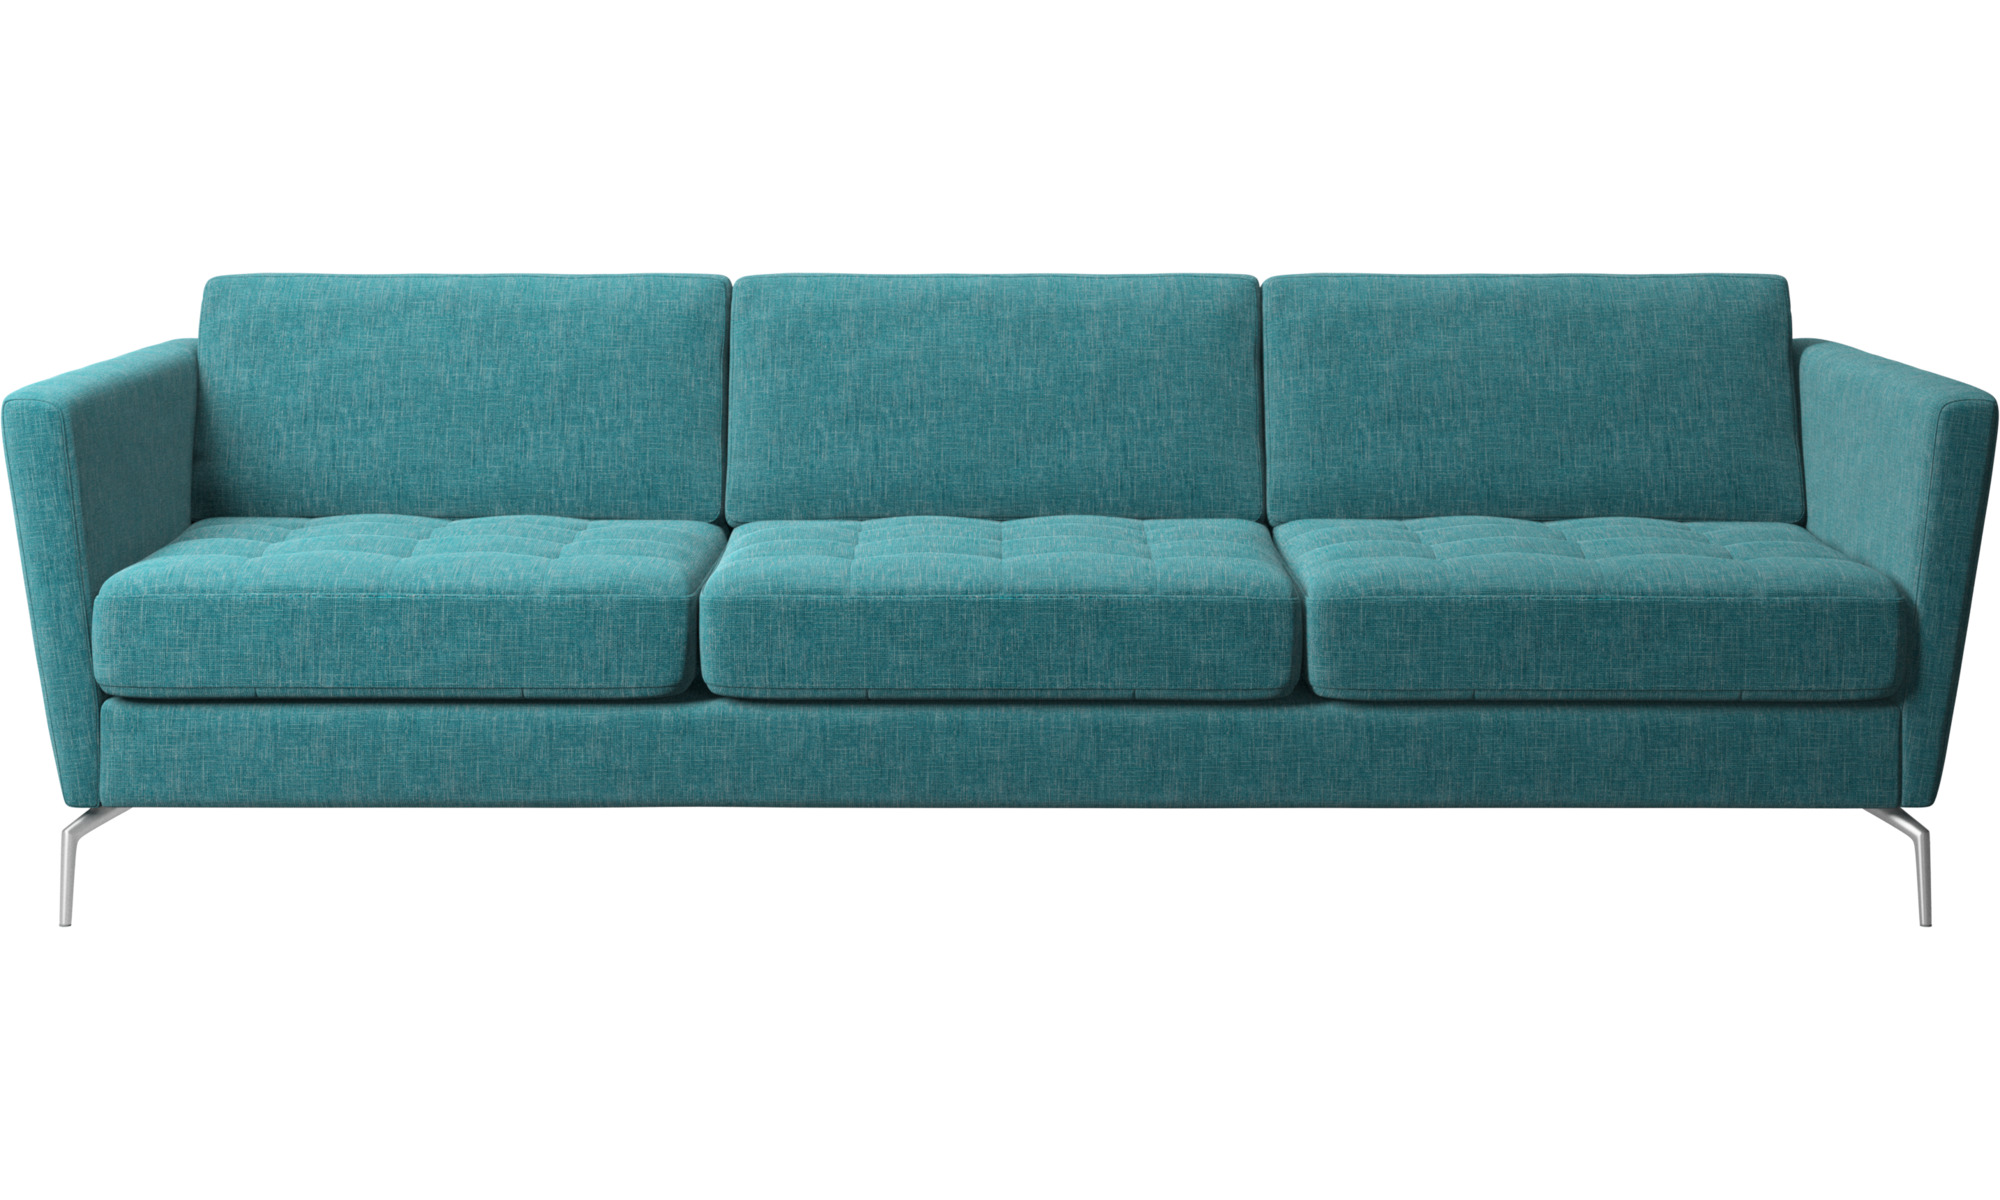 3 seater sofas osaka sofa tufted seat boconcept for Chaise 65 cm ikea